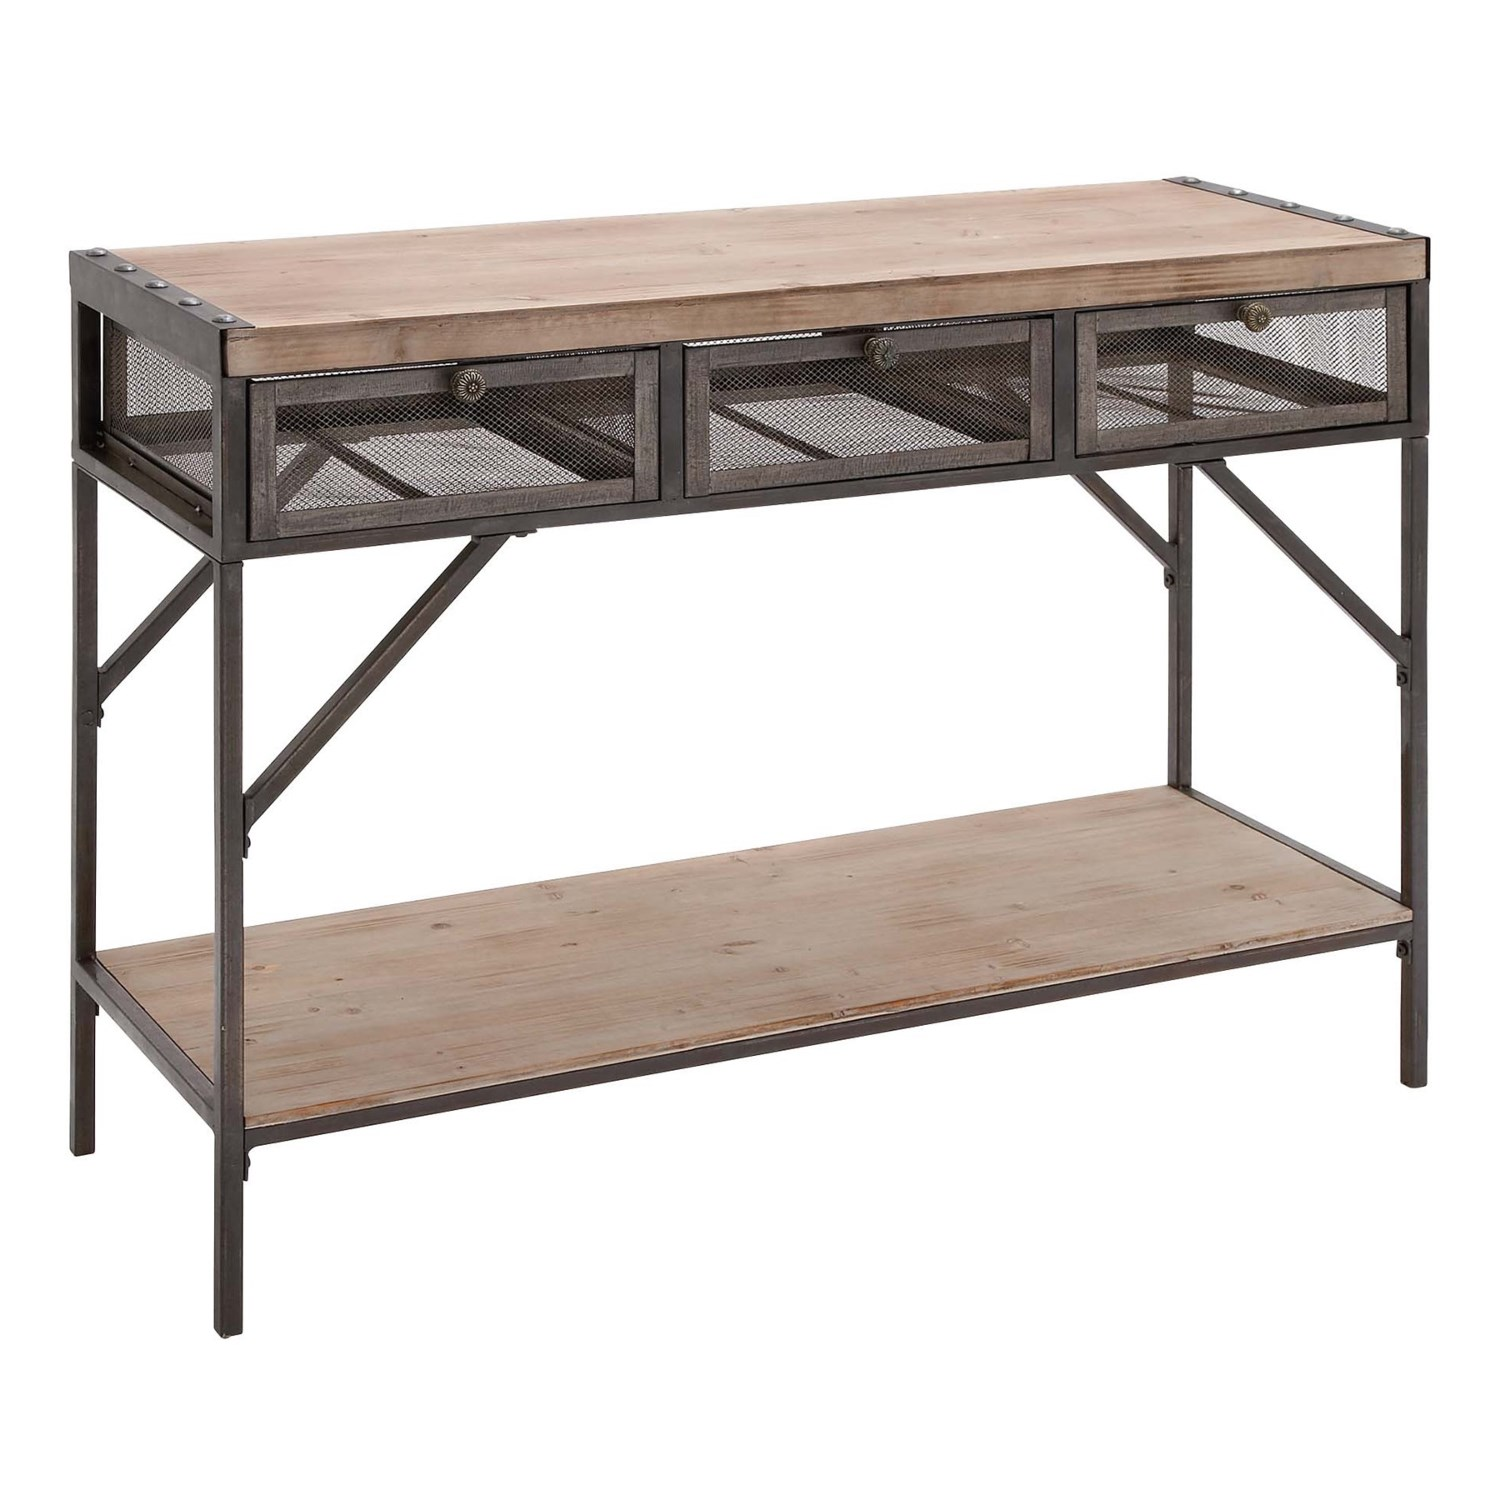 Uma 3 drawer wood and metal console table 43x32 save 31 uma 3 drawer wood and metal console table 43x32 in naturalblack geotapseo Images